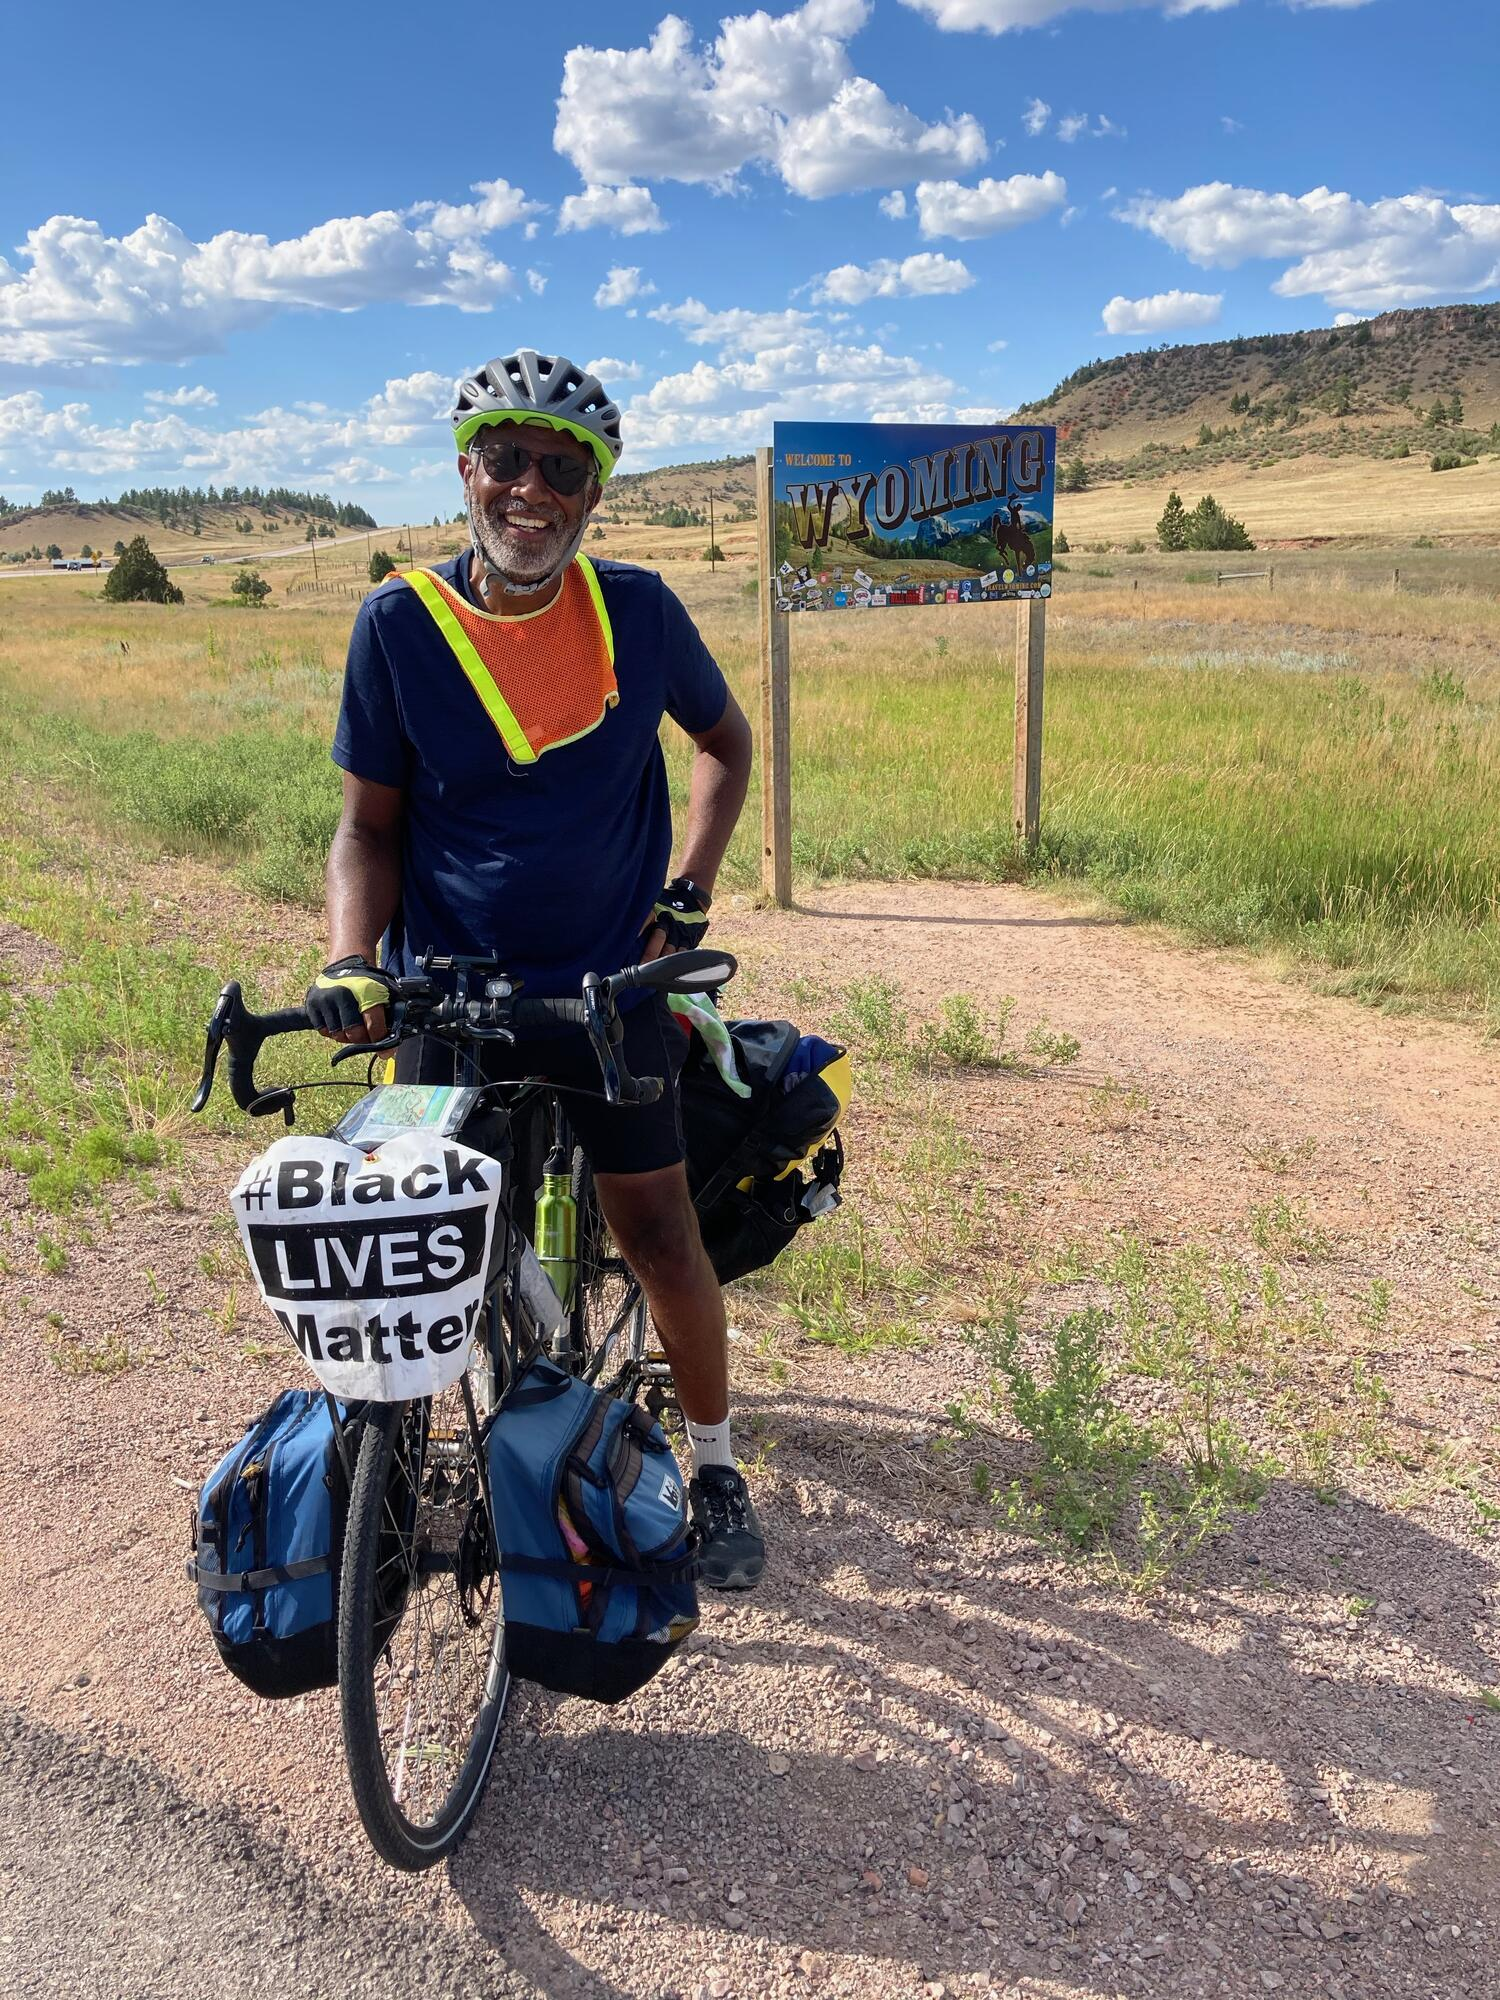 Scott enterying Wyoming on his 2020 x-country bicycle trip